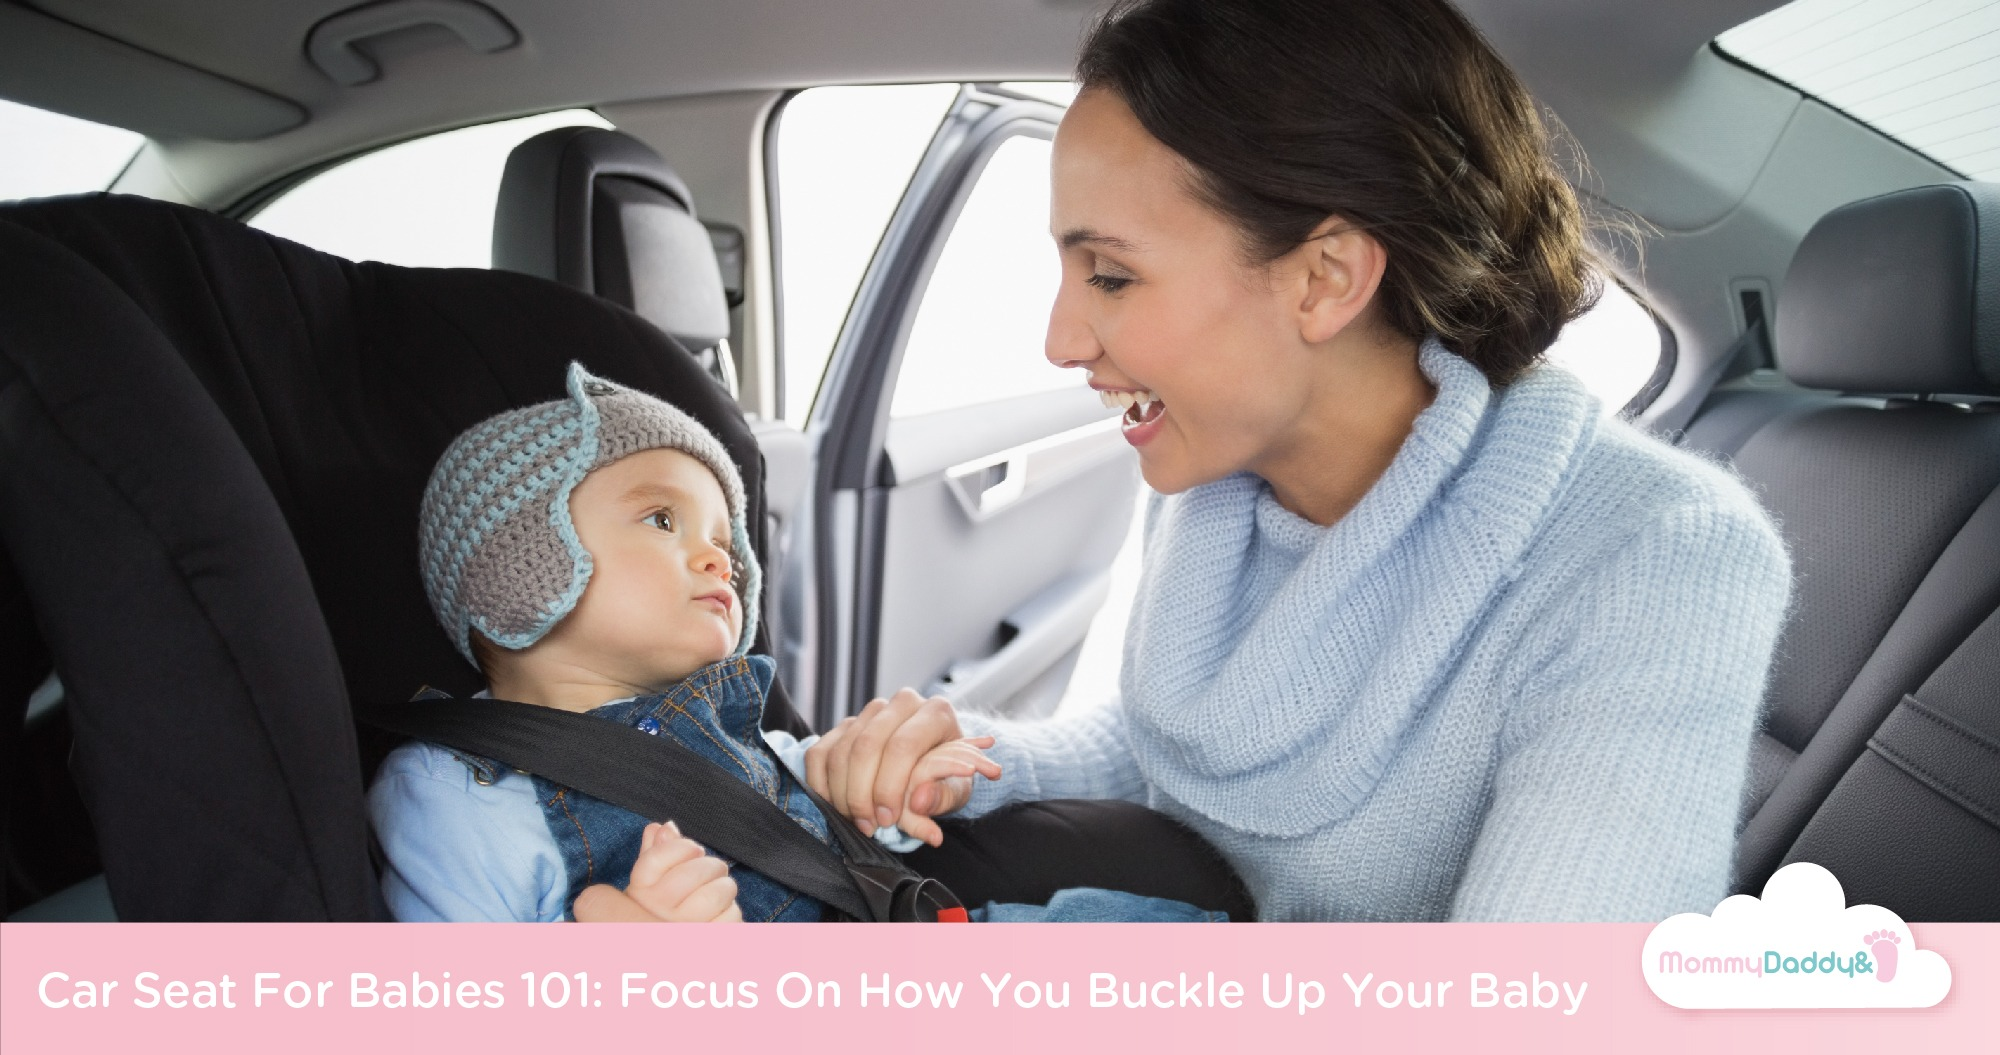 Infant Car Seat Safety 101: Buckle Up Your Baby Properly